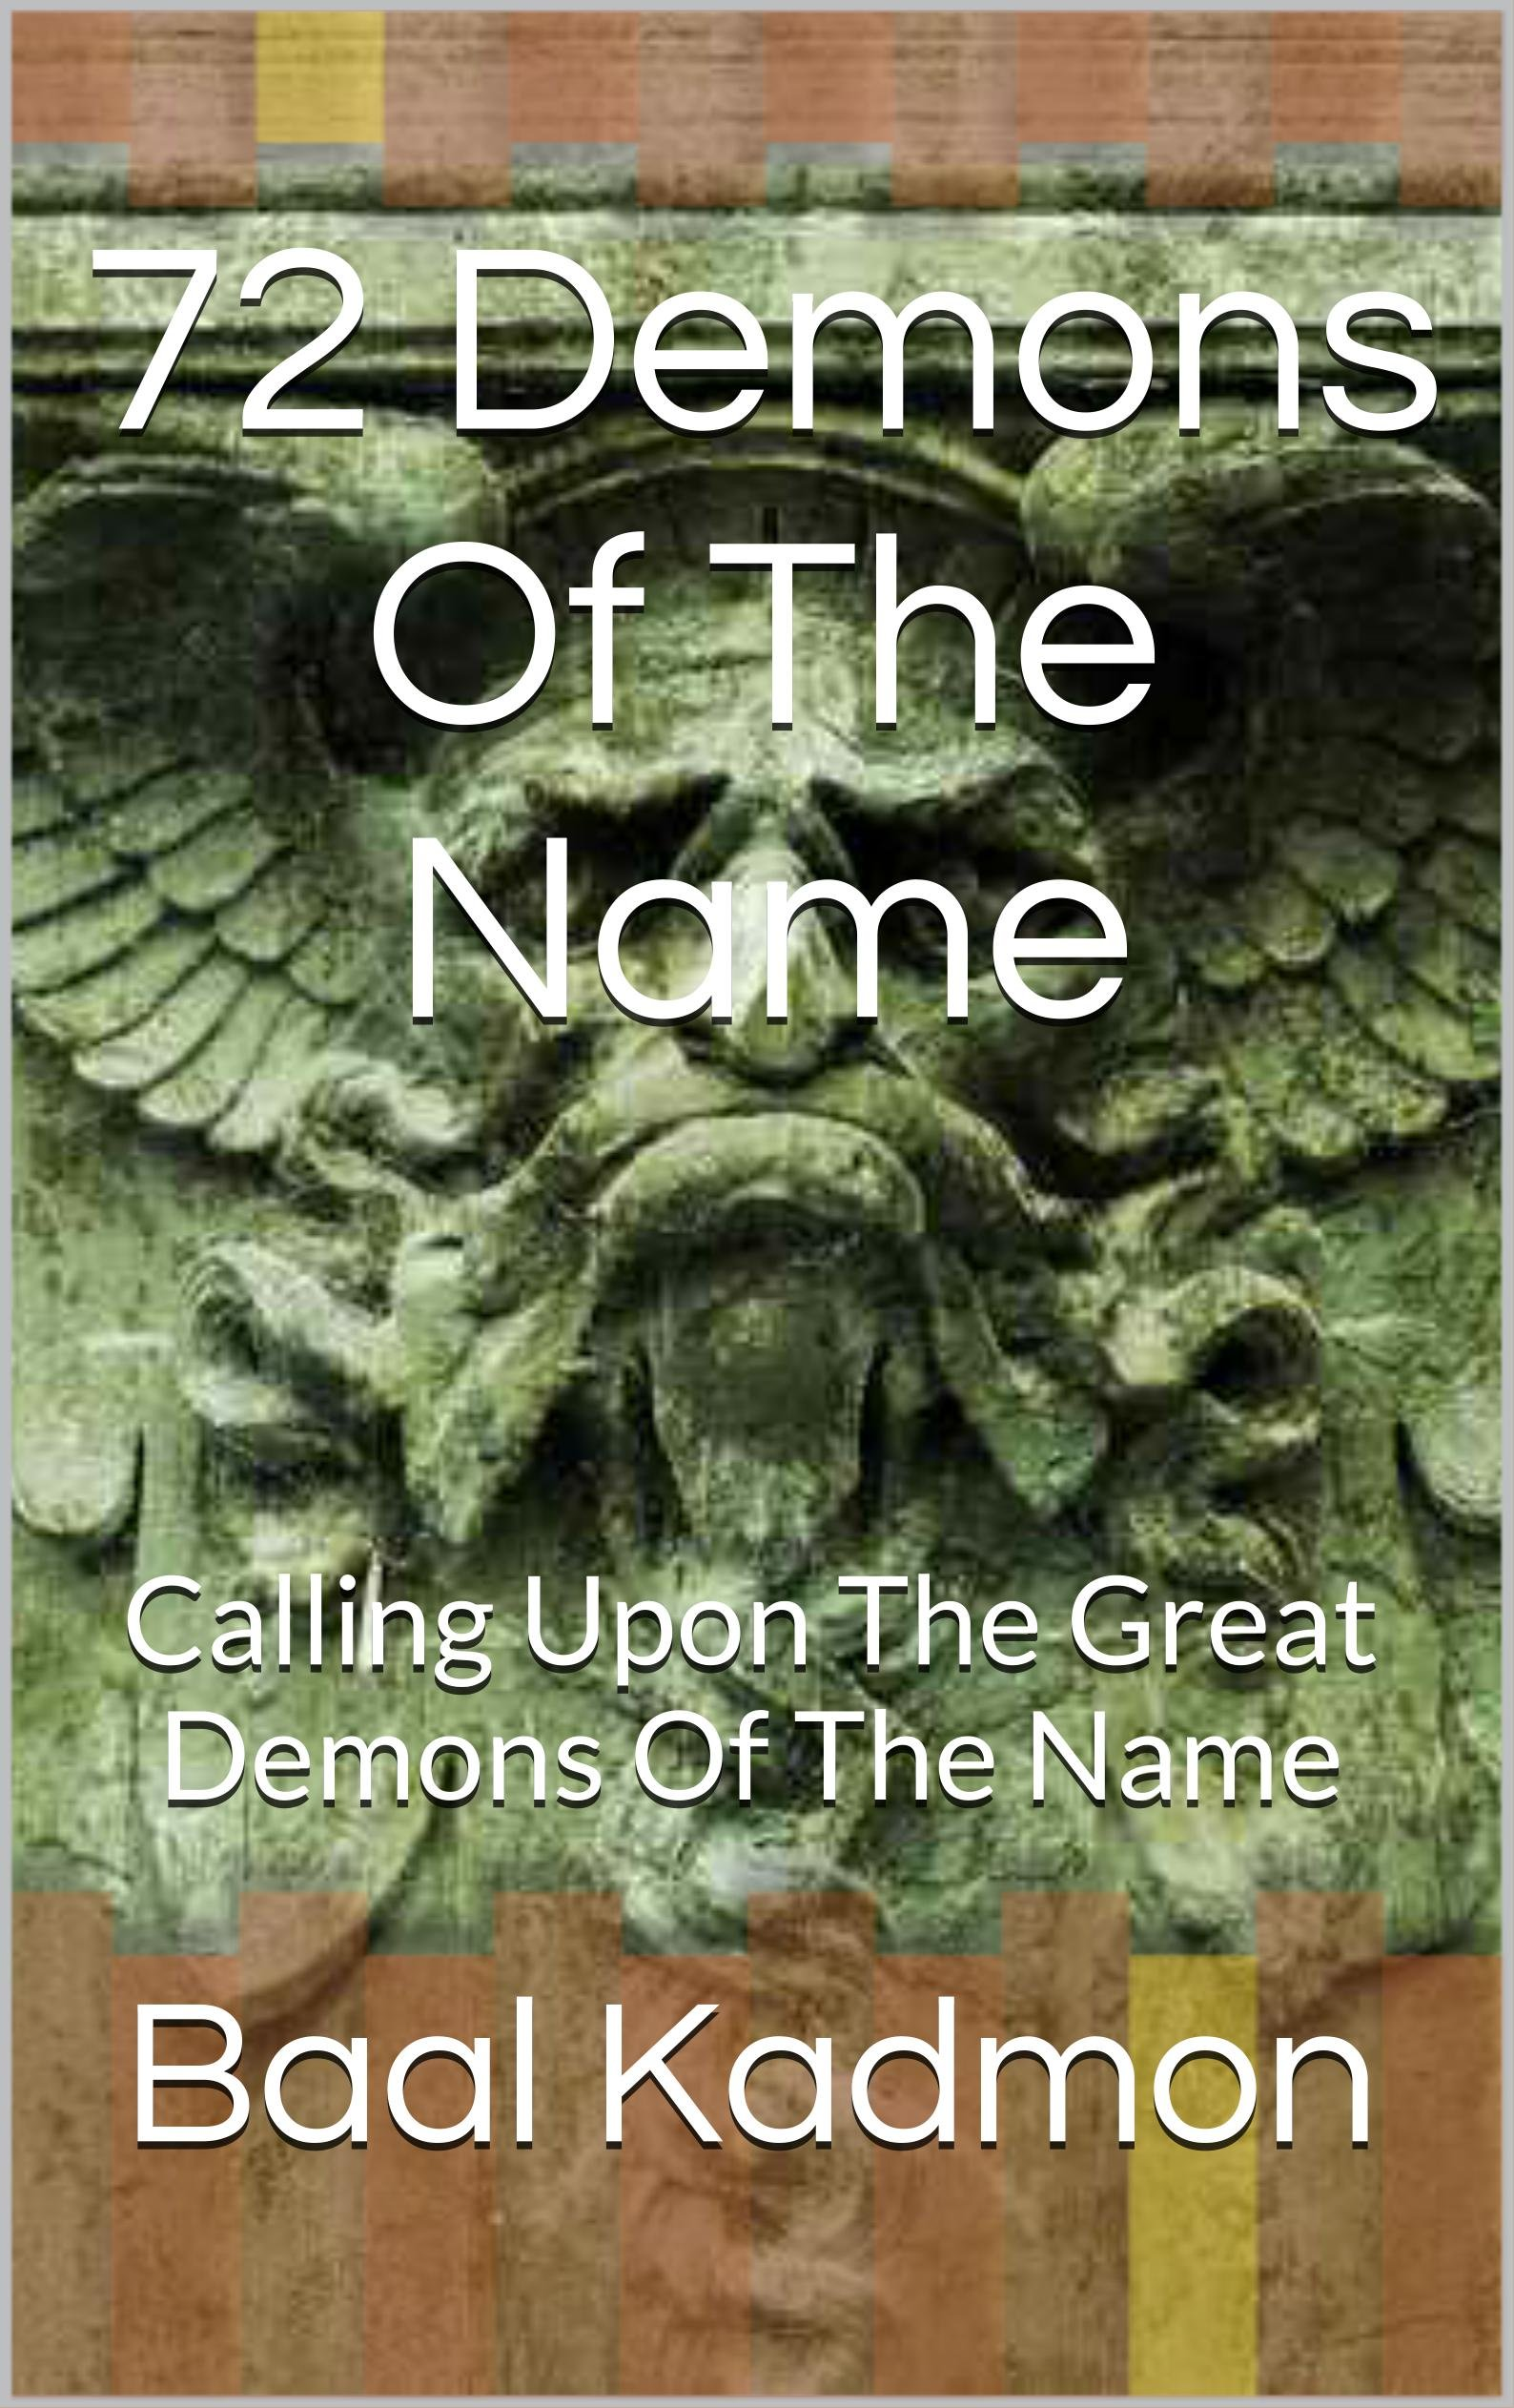 72 Demons Of The Name: Calling Upon The Great Demons Of The Name (Sacred Names Book 5) (English Edition)